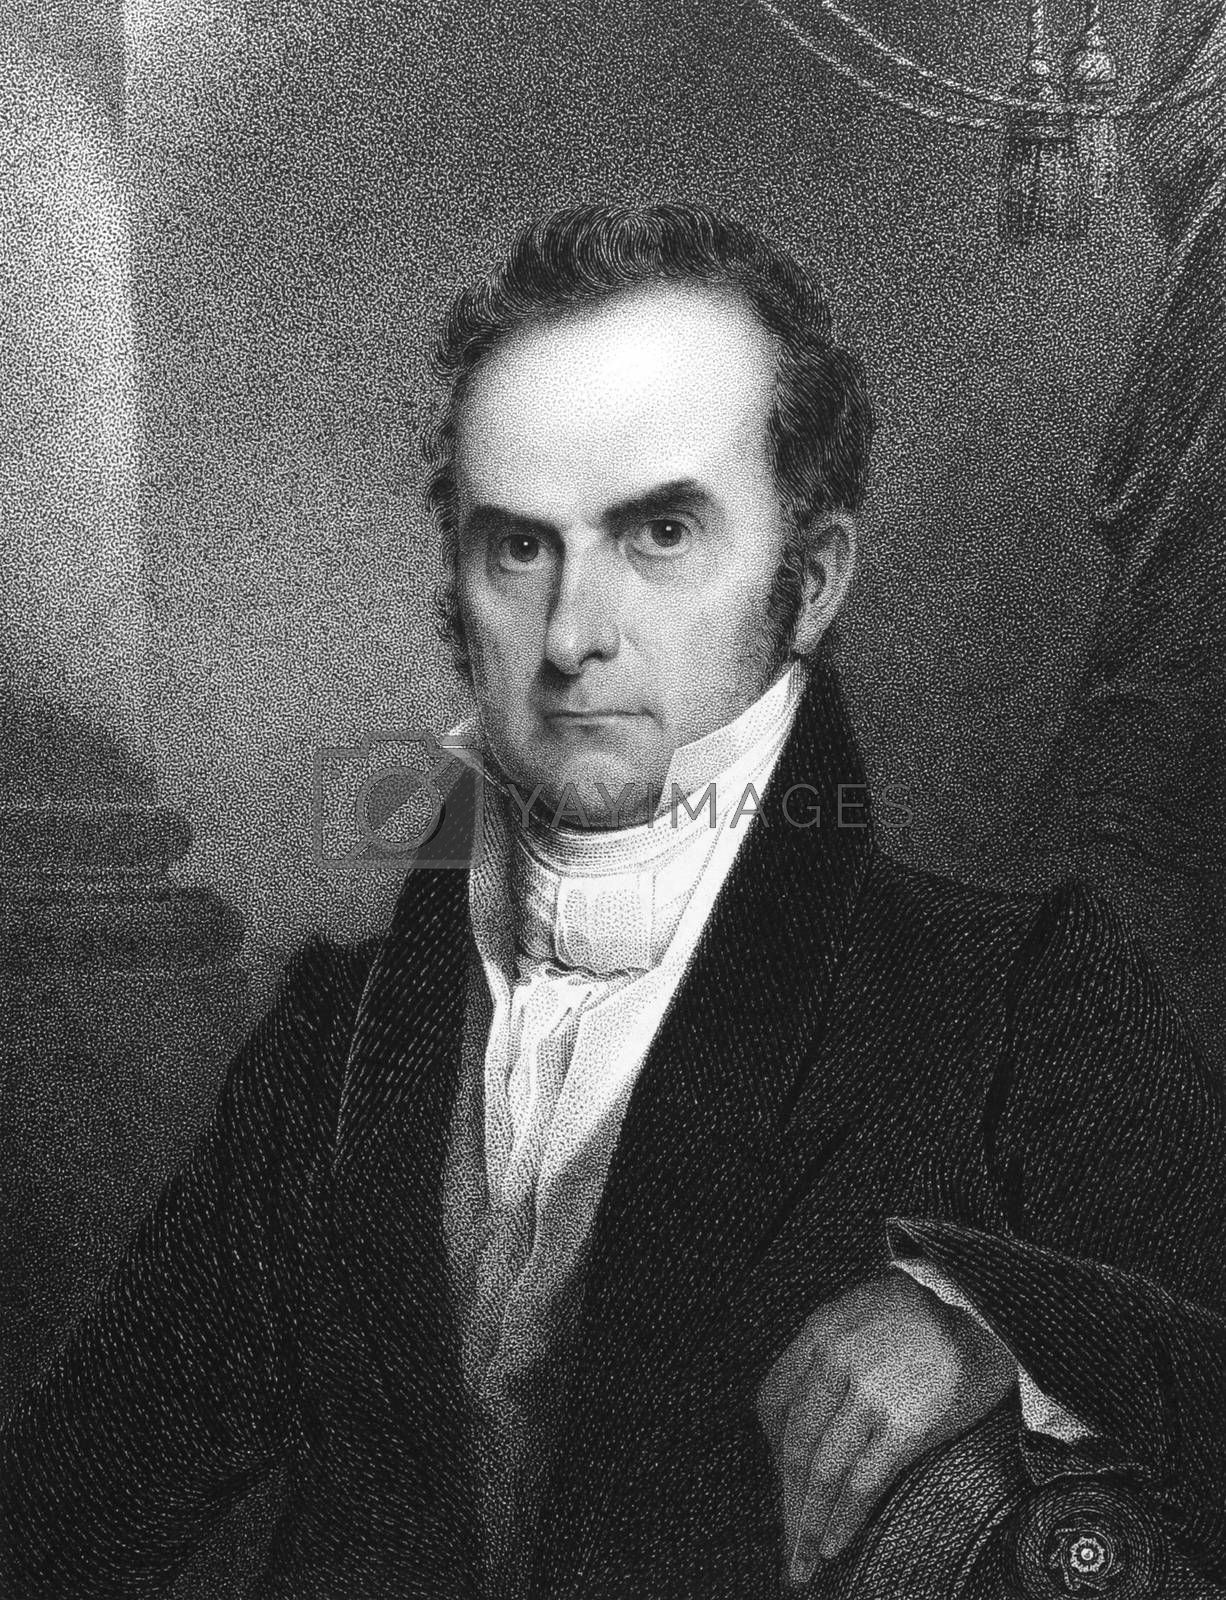 Daniel Webster (1782-1852) on engraving from 1834. Leading American statesman and senator. Engraved by J.B Longacre  and published in ''National Portrait Gallery of Distinguished Americans'',USA,1834.